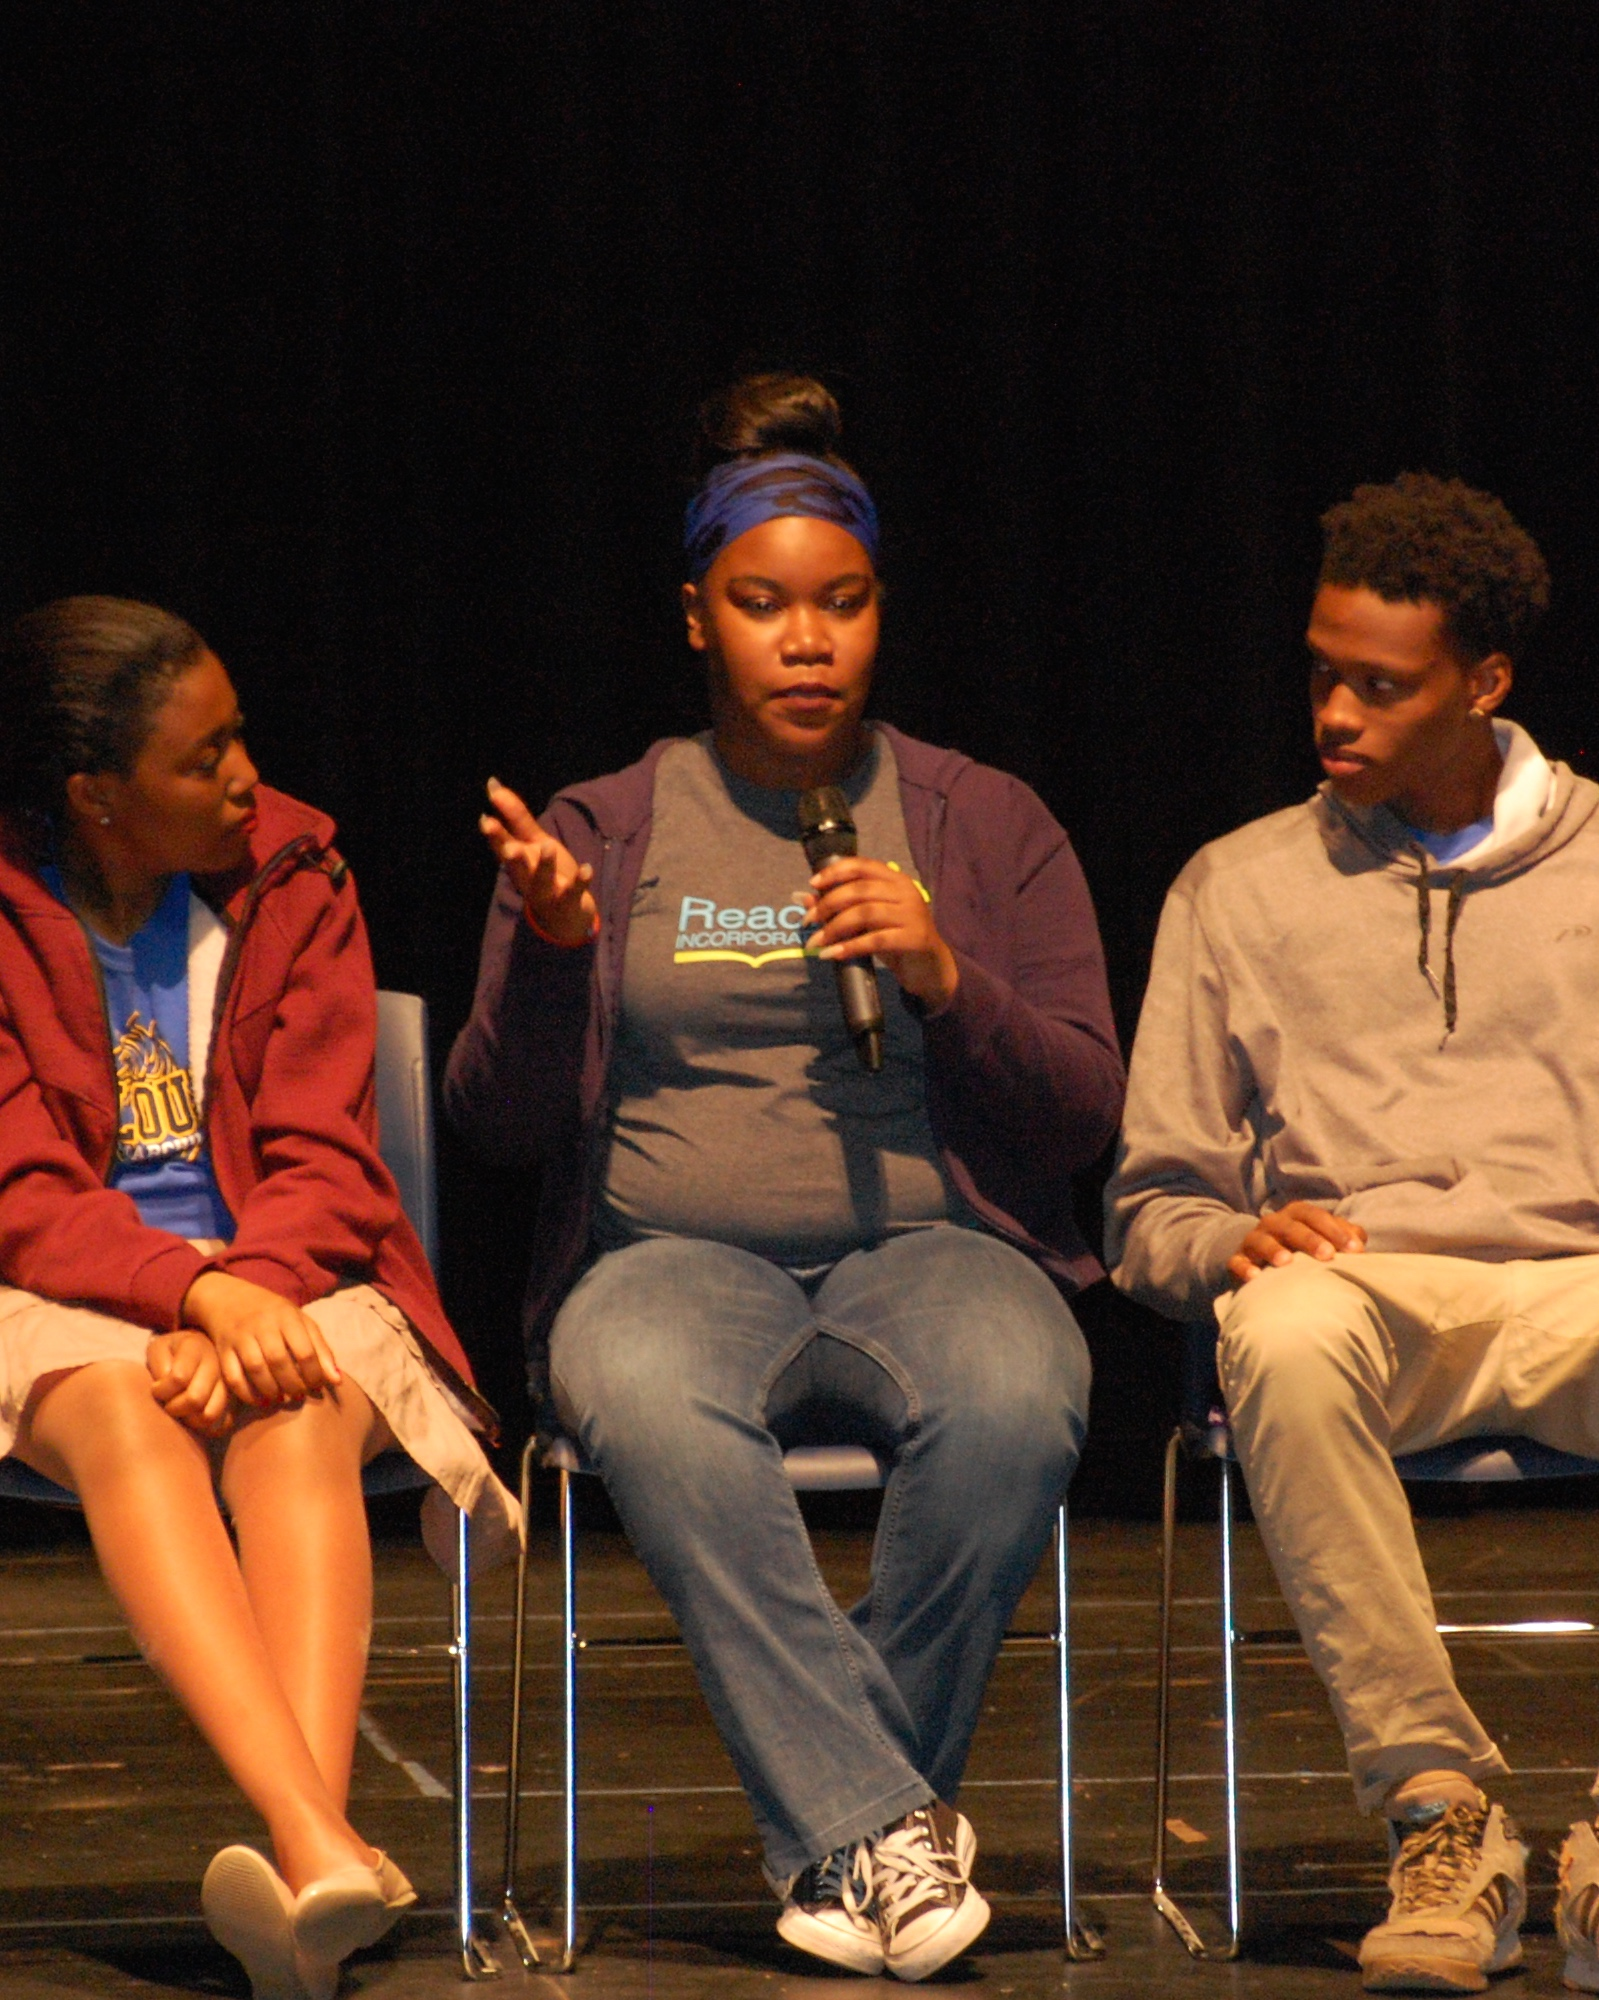 Diane, Darne'sha, and Mario talk about writing for the stage after the show.